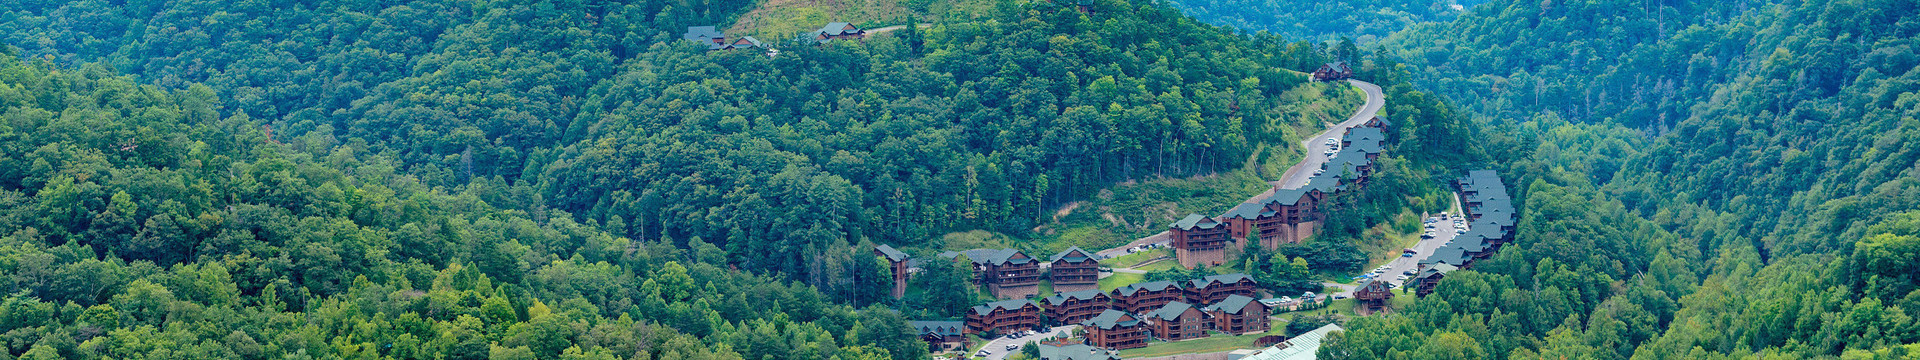 Smoky Mountain Getaways - Gatlinburg Group Lodging